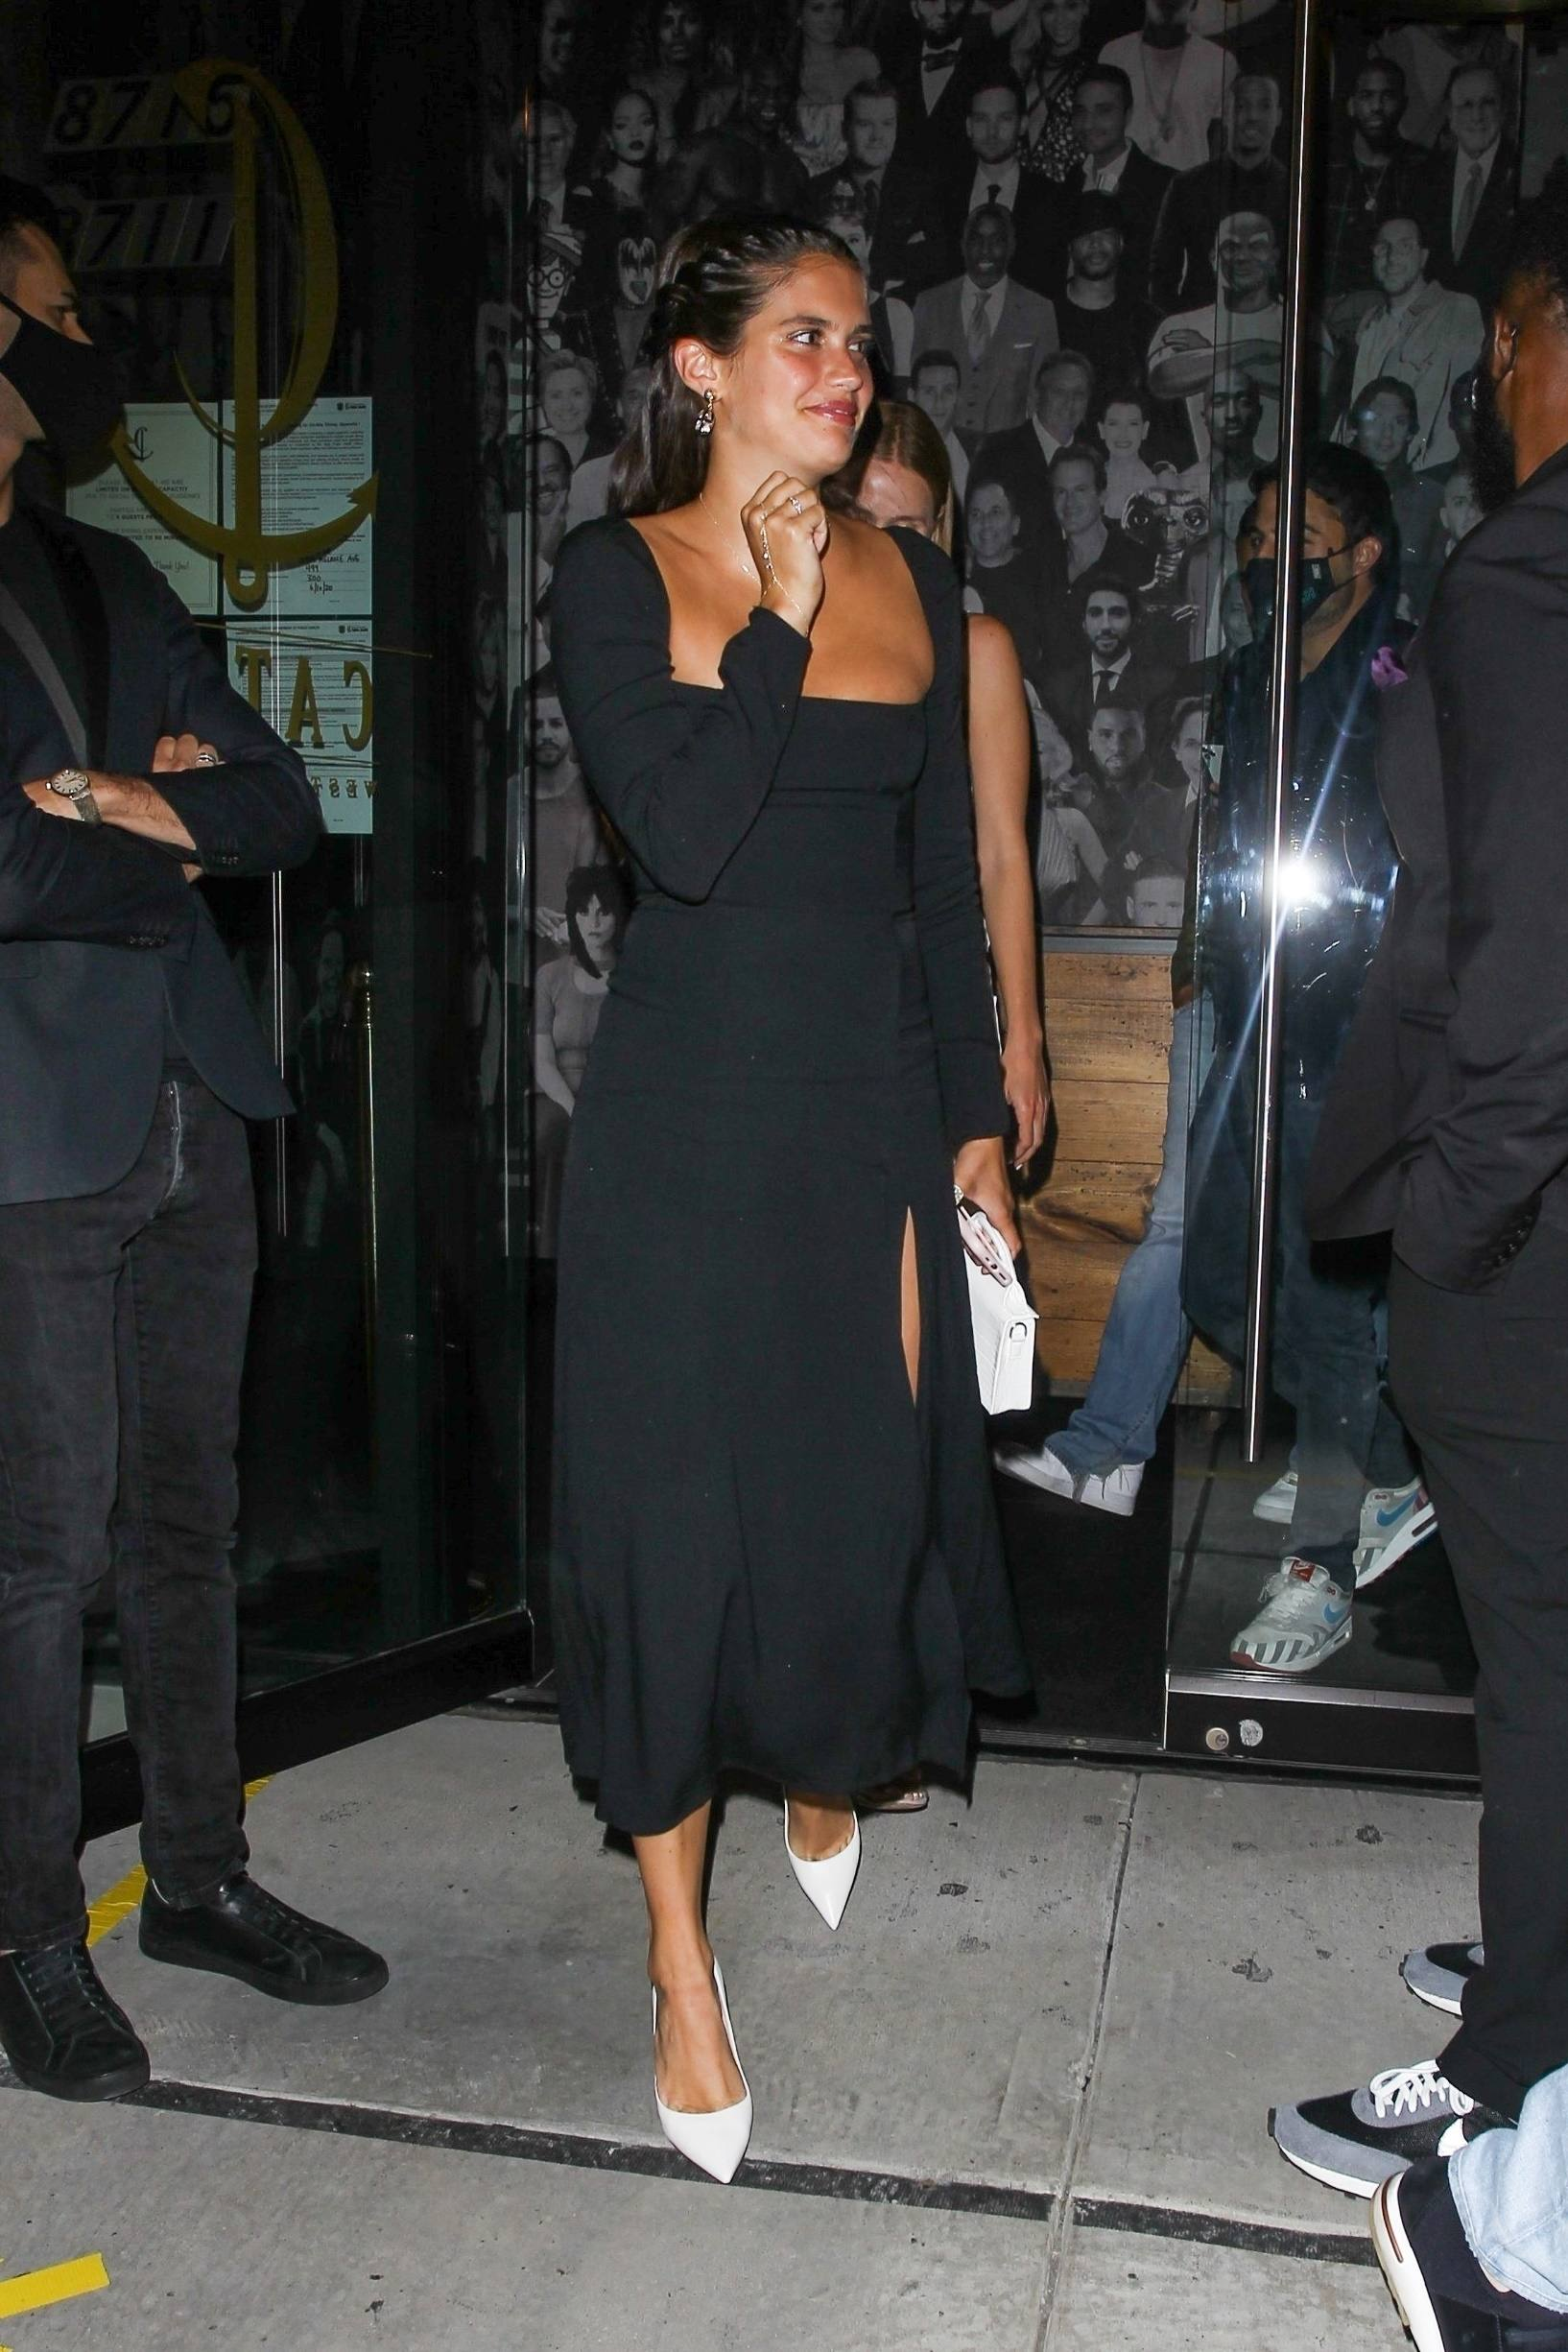 Sara Sampaio – Beautiful In Sexy Black Dress At Catch Restaurant In West Hollywood 0005